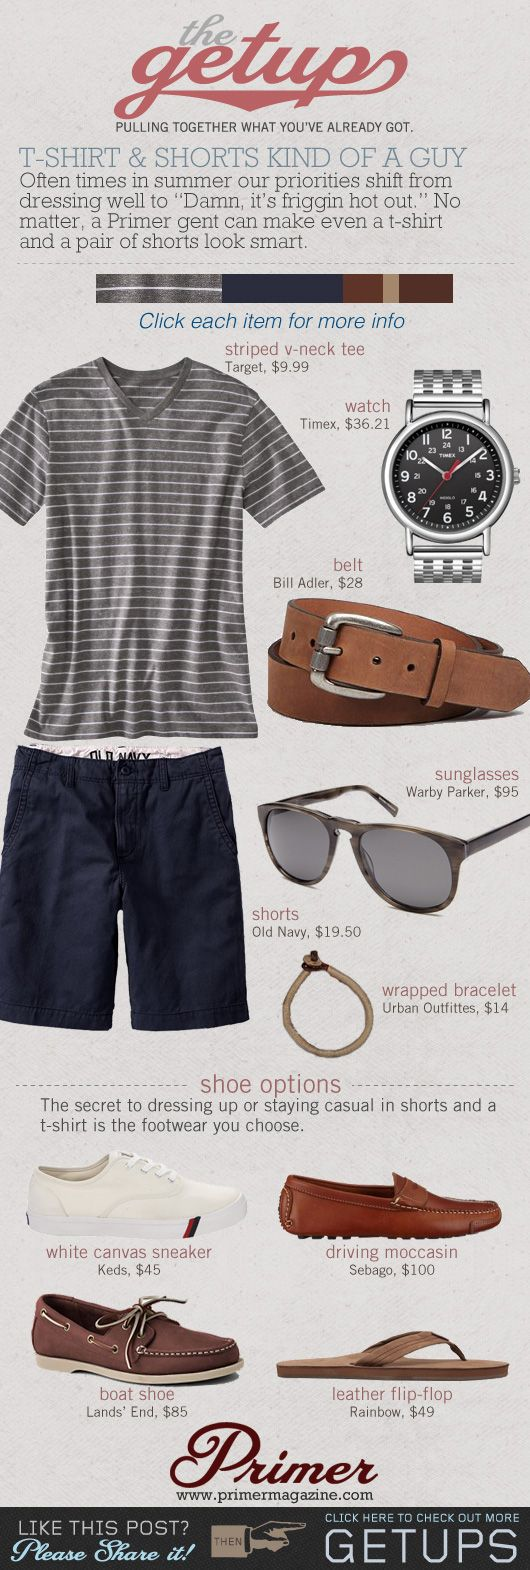 Give me back my summer: Primers, Summer Looks, Summer Style, Summer Fashion Men Shorts, Summer Outfits, Men Fashion Casual Summer, T Shirts, Guys, Fashion Boots